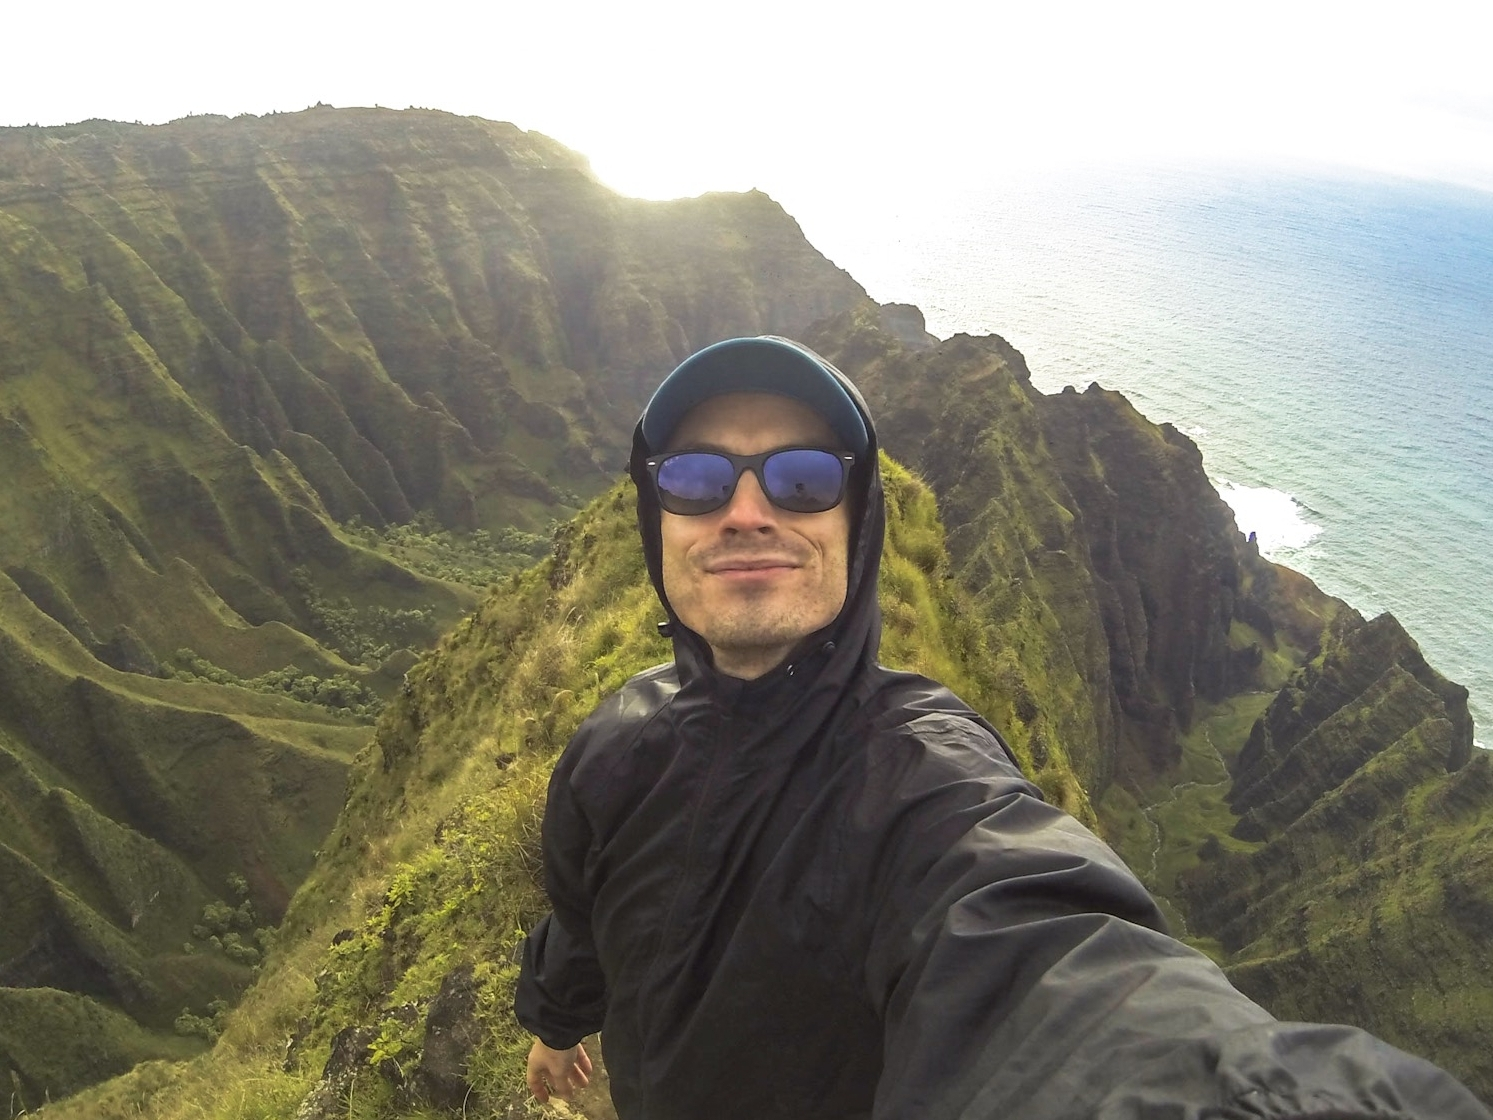 Inspiring Views - Few destinations that I've so far visited have inspired such love for our planet as the Hawaiian island of Kaua'i. Astounding natural beauty and the sincere aloha spirit made this solo trip one of the most amazing experiences of my life. Here, I stood at the end of the Awa'awapuhi Trail, overlooking the incredible Nāpali Coast.